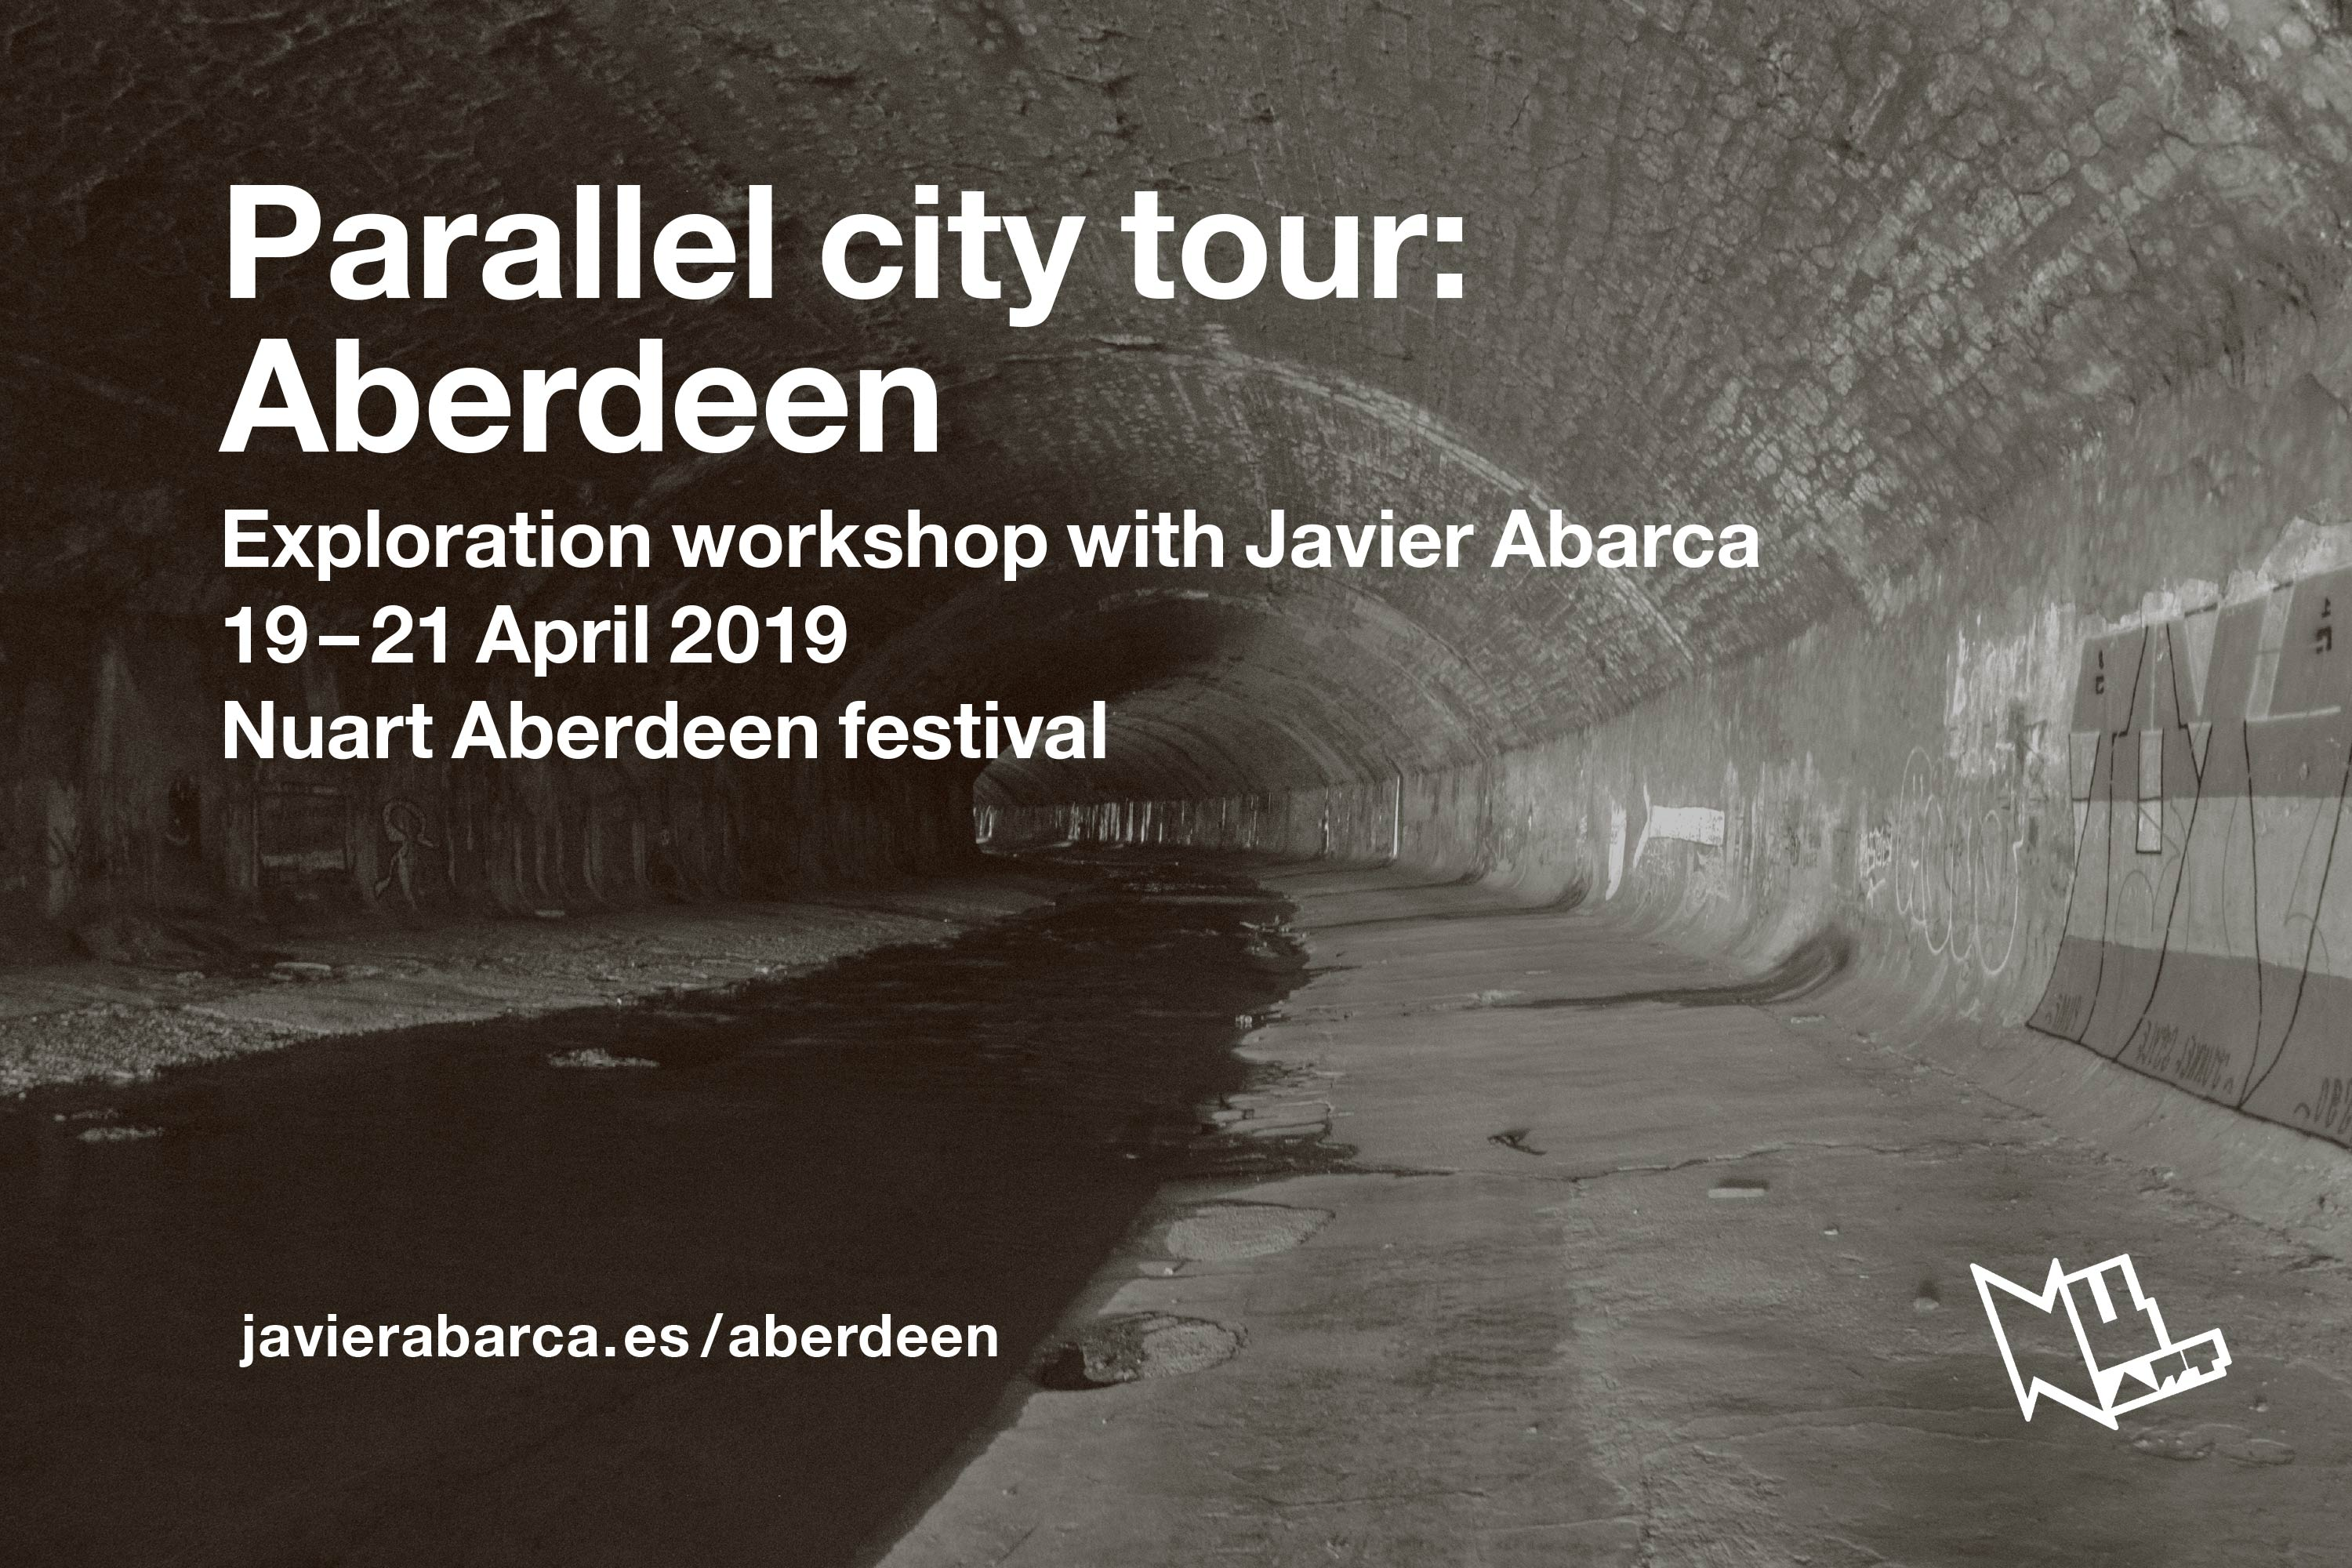 Parallel City Tour Aberdeen - Javier Abarca 2019.